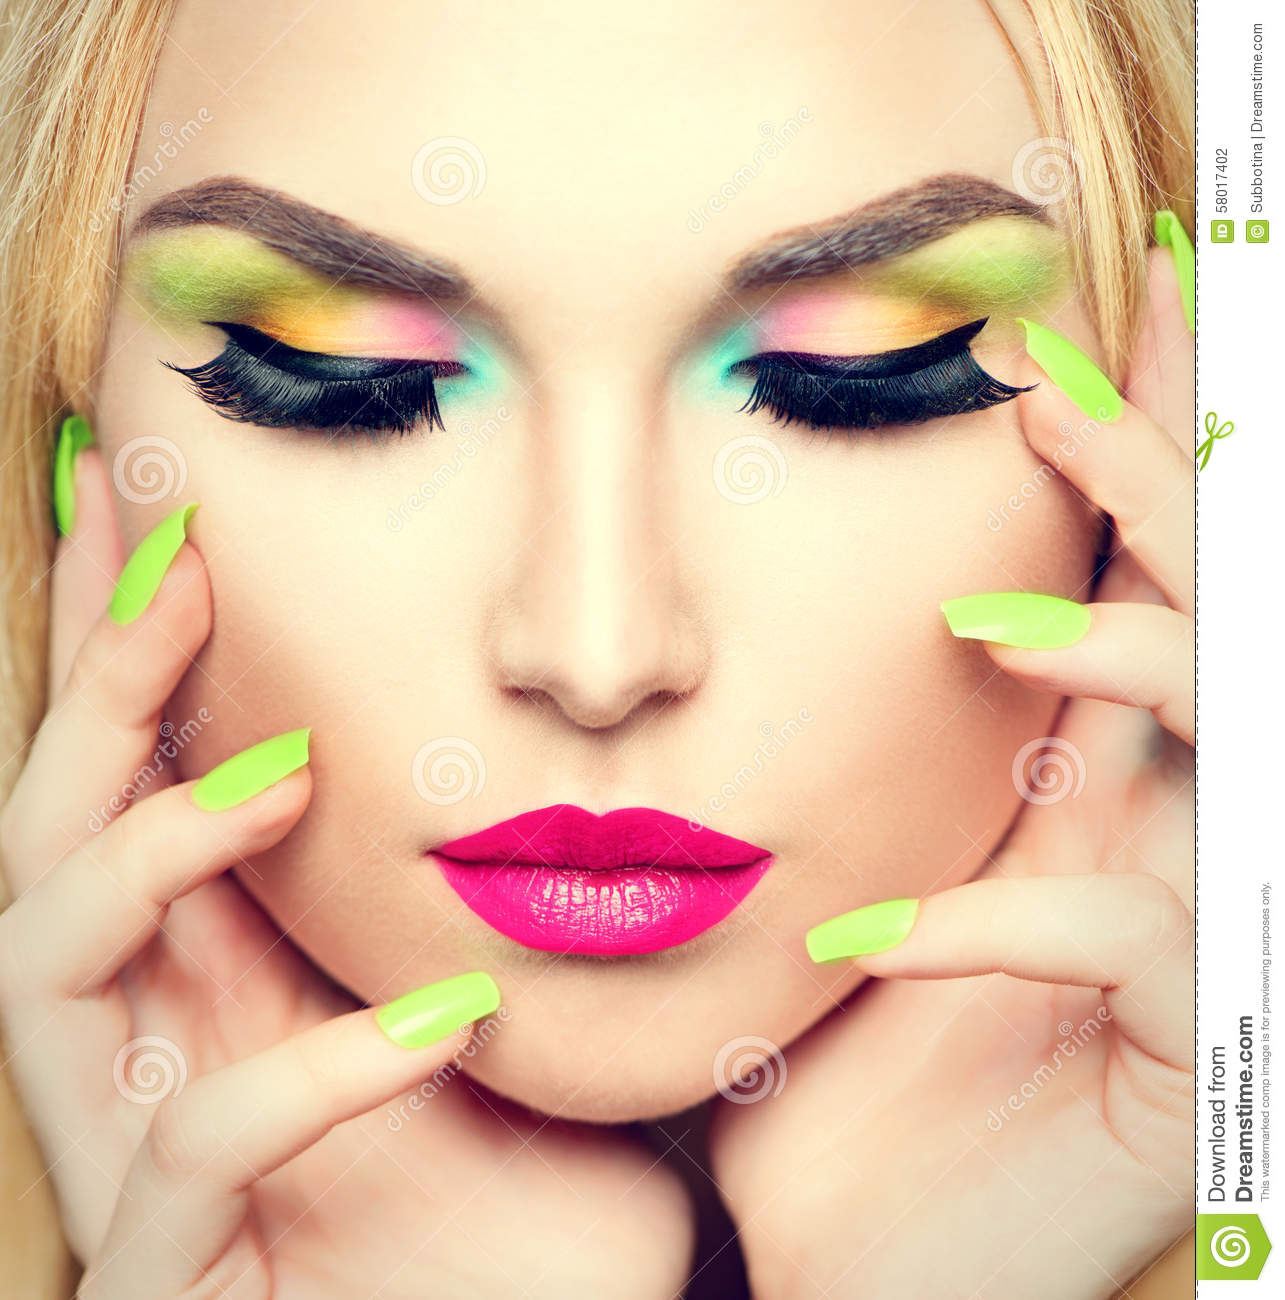 Beauty Woman With Vivid Makeup And Colorful Nail Polish Stock Photo - Image 58017402